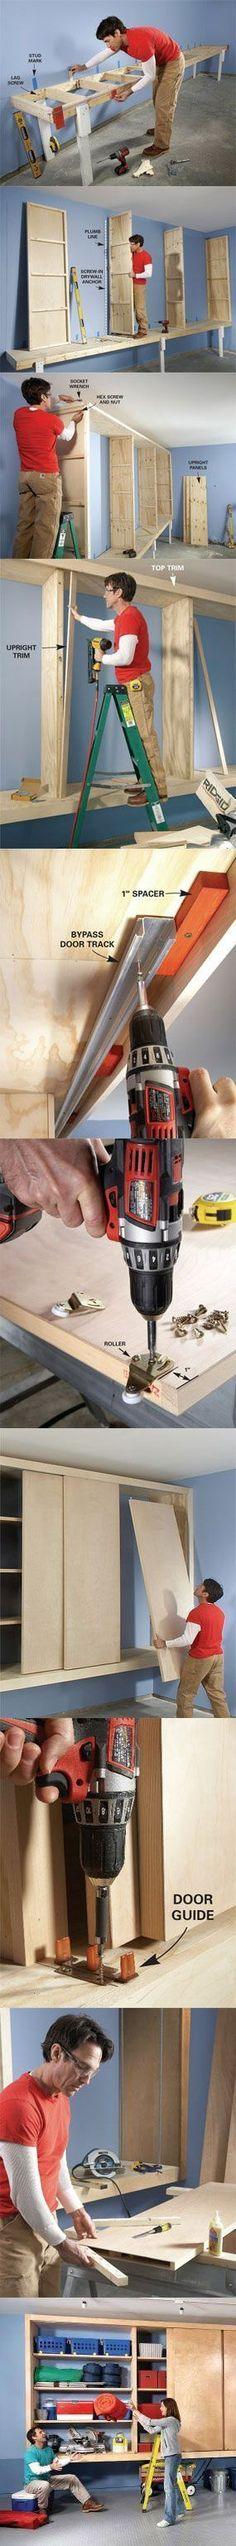 DIY Garage Cabinet Giant DIY Garage Cabinet Plans: Build your own shelving and storage area for the garage.Giant DIY Garage Cabinet Plans: Build your own shelving and storage area for the garage. Armoire Garage, Garage Shed, Garage Cabinets, Garage House, Garage Workshop, Dream Garage, Garage Plans, Workshop Storage, Building Cabinets